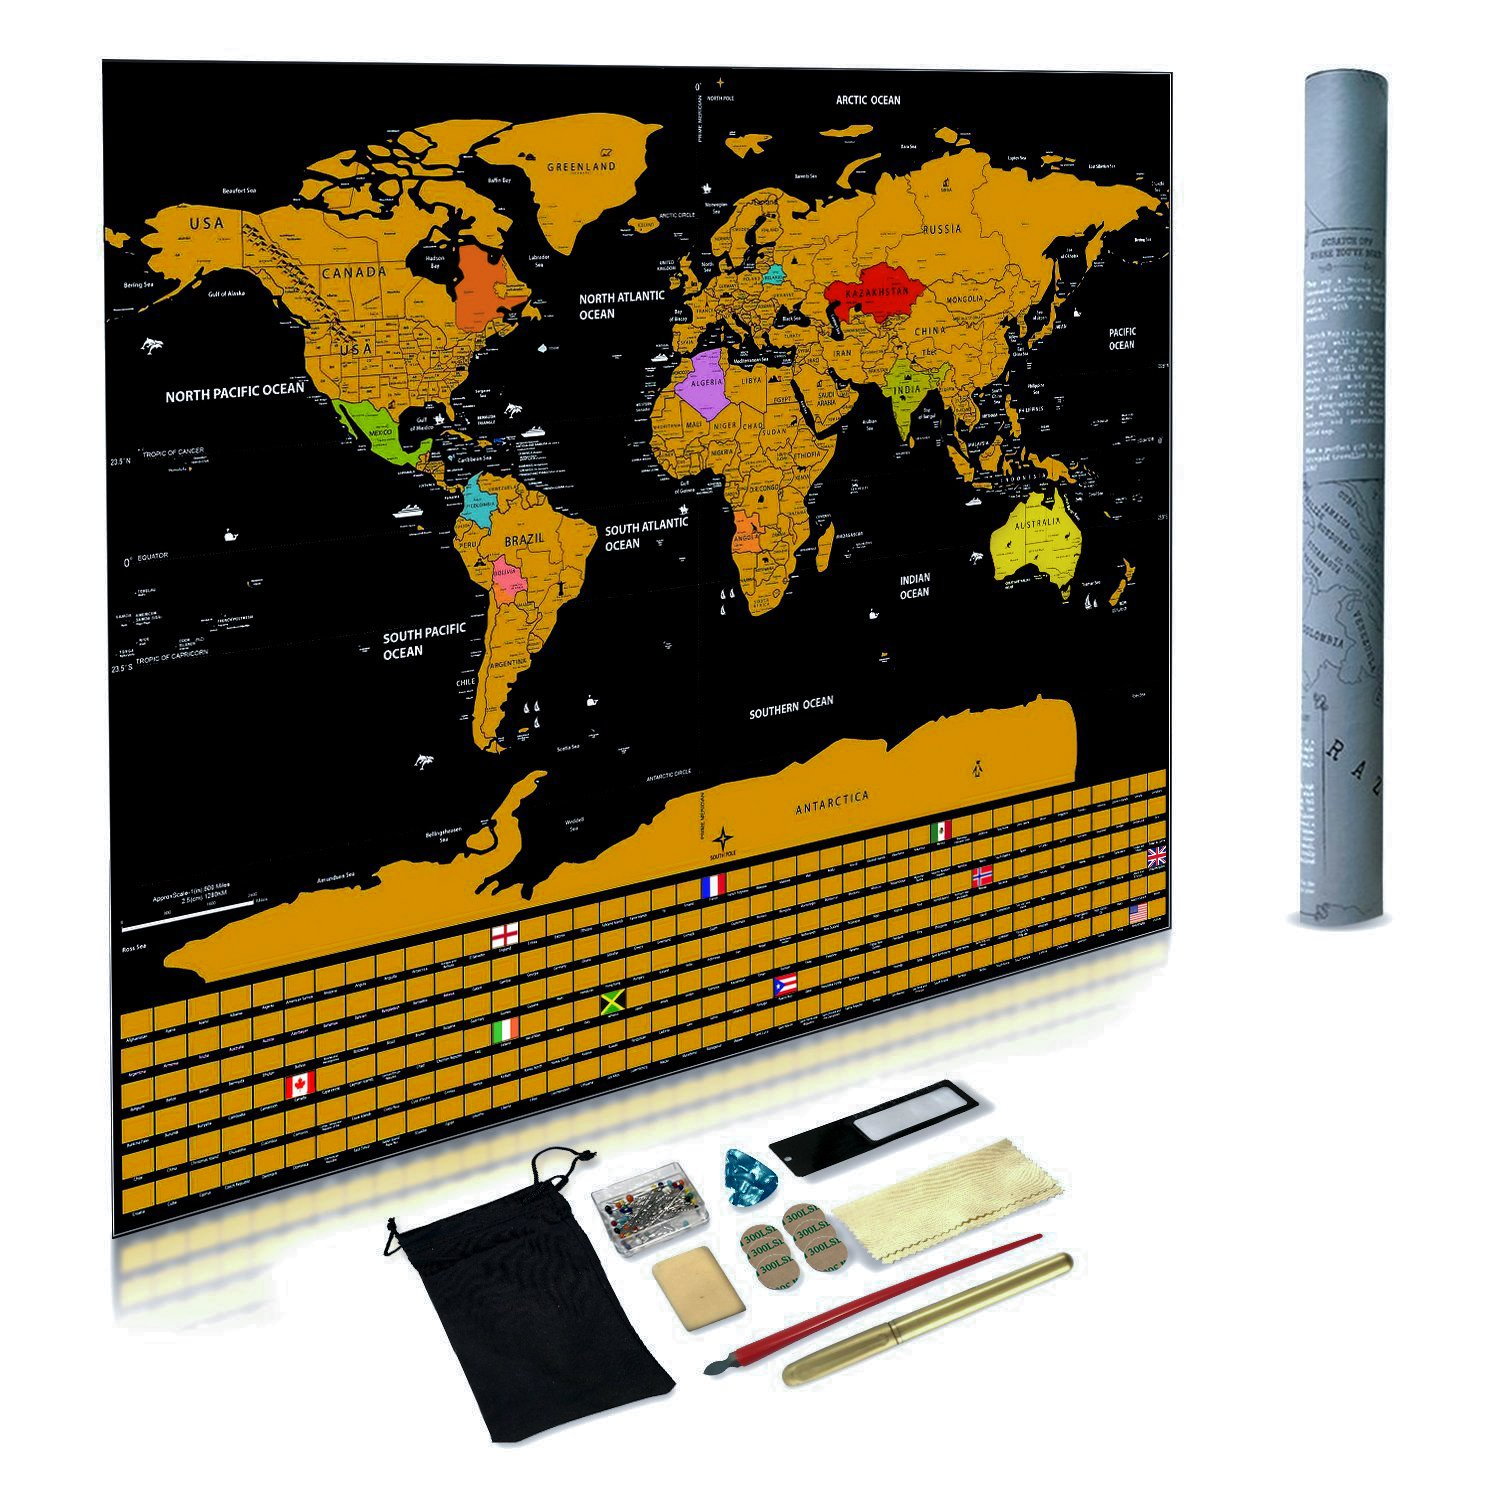 Scratch Off World Map - Scratch Map with All Country Flags and Accessory kit. Deluxe Gold Edition Perfect for Travel Gift or Home and Office Decor ExpeditionTeam